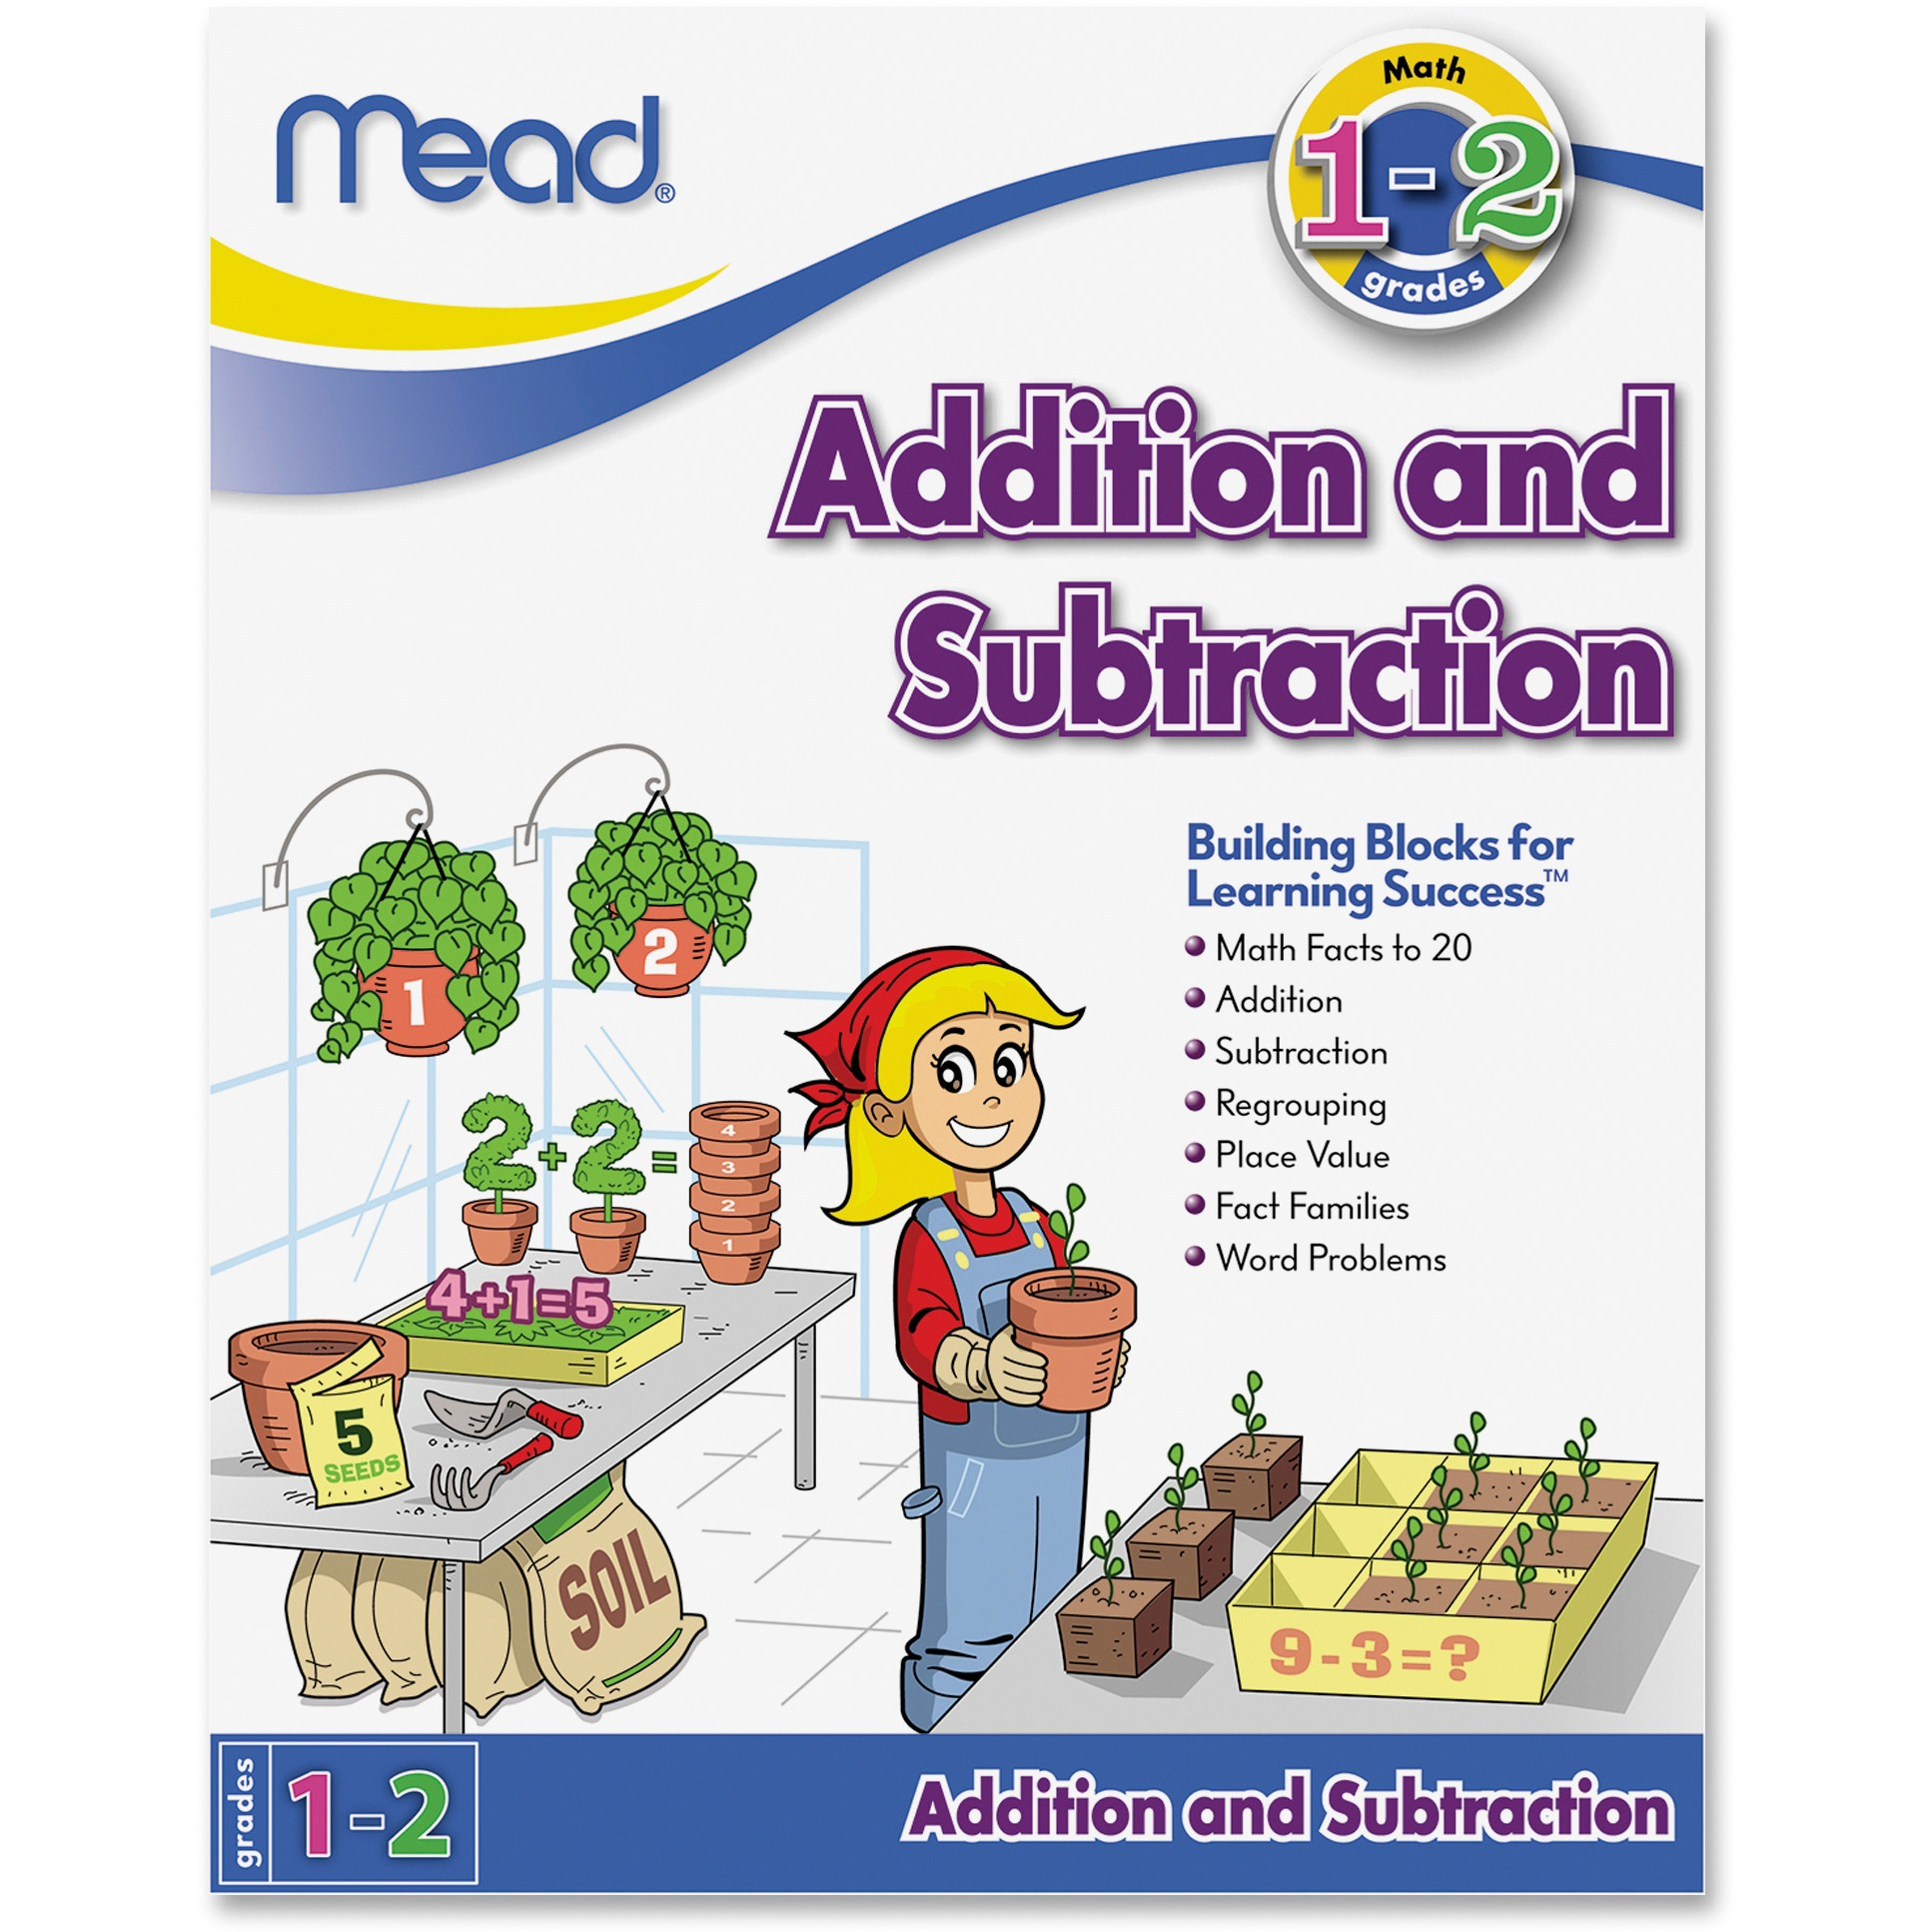 Mead Addition And Subtraction Workbook Grades 1-2 Education Printed Book For Mathematics - Published On: 2013 March 15 - Book - 64 Pages (mea-48078)